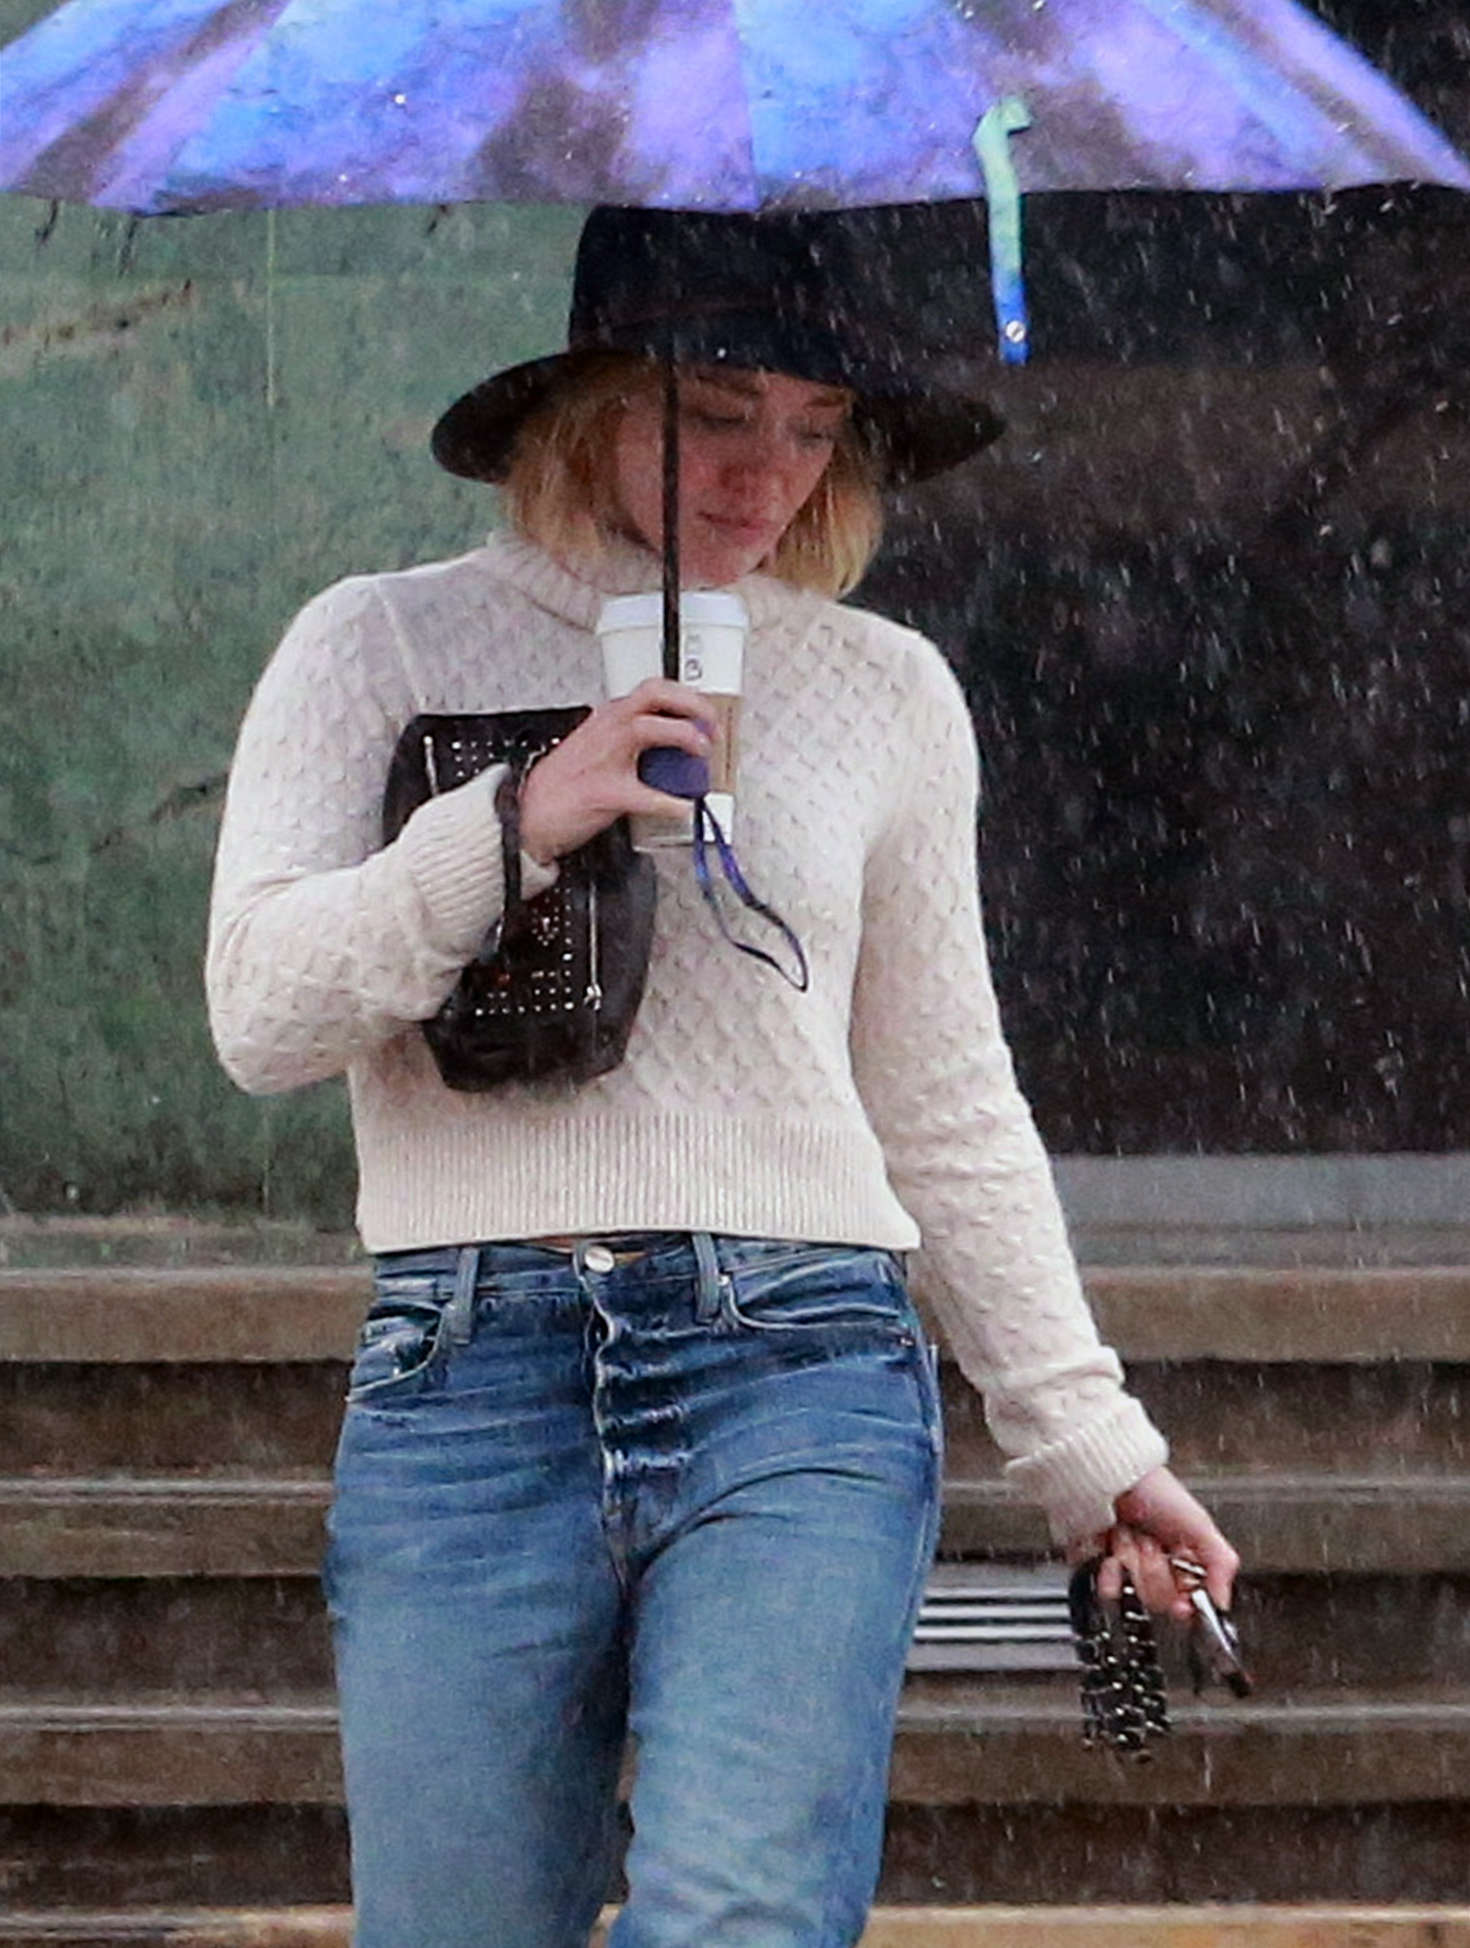 Hilary Duff 2016 : Hilary Duff in Jeans out on a rainy day -29